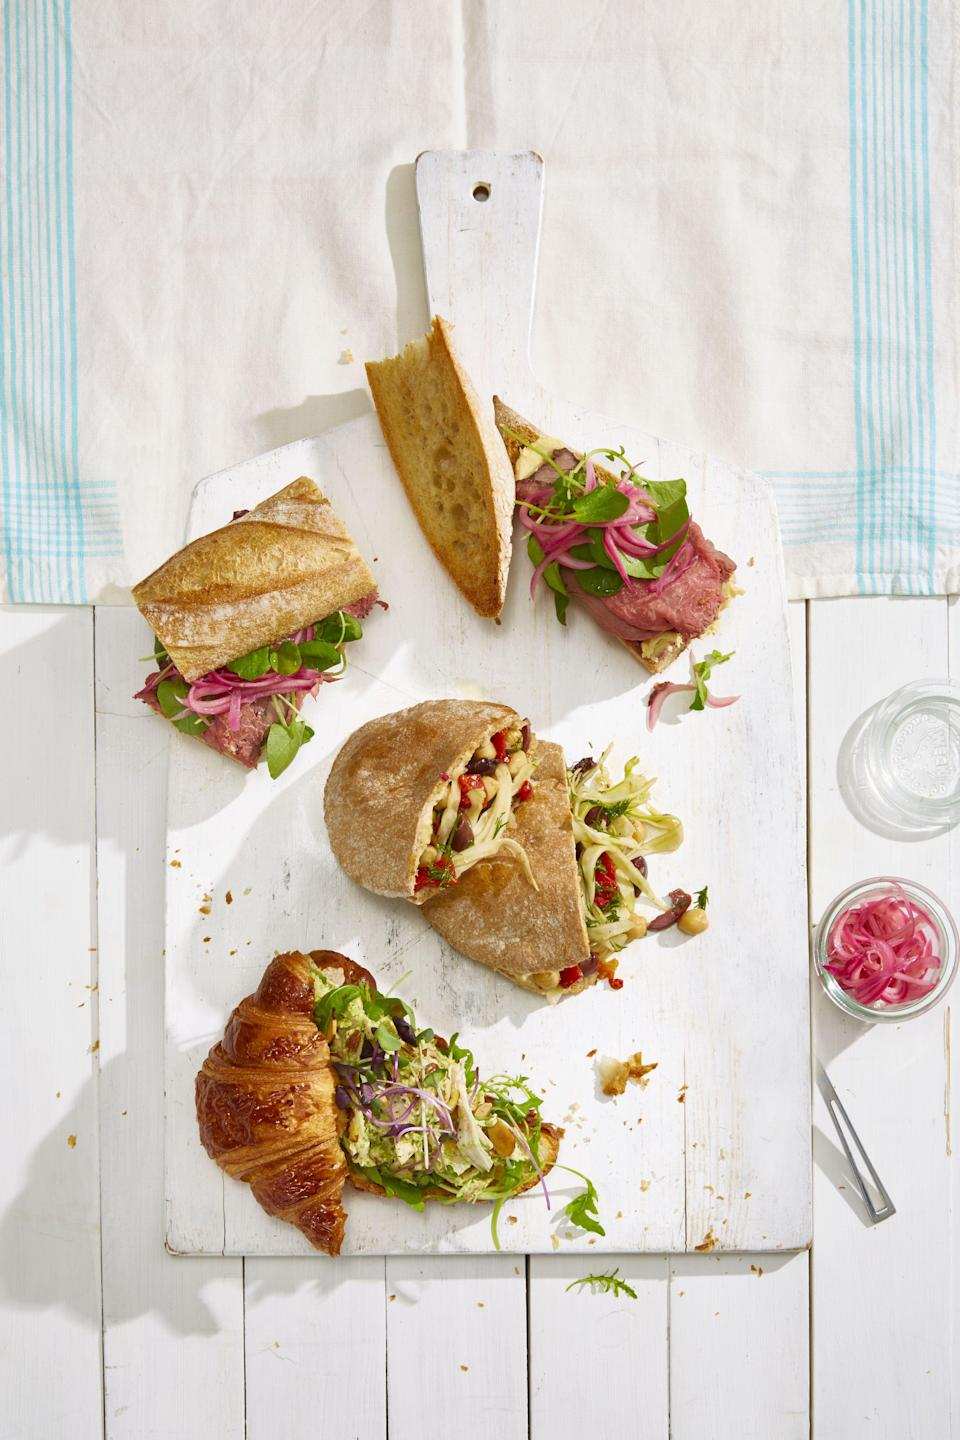 """<p>Warmer weather and sunnier skies have us dreaming about beach days, backyard hangouts (with delicious <a href=""""https://www.goodhousekeeping.com/food-recipes/easy/g27408619/bbq-side-dishes/"""" rel=""""nofollow noopener"""" target=""""_blank"""" data-ylk=""""slk:barbecue side dishes"""" class=""""link rapid-noclick-resp"""">barbecue side dishes</a>, of course!), and plenty of picnic food ideas. And we're not talking about your typical al fresco fare — we've rounded up picnic food ideas that'll please kids and adults — colorful <a href=""""https://www.goodhousekeeping.com/food-recipes/healthy/g908/vegetarian-recipes/"""" rel=""""nofollow noopener"""" target=""""_blank"""" data-ylk=""""slk:vegetarian recipes"""" class=""""link rapid-noclick-resp"""">vegetarian recipes</a> as well as hearty meat lovers' eats. It's the perfect time of year to pack a wicker basket, break out a checkered blanket, and head to your favorite patch of grass (the backyard counts!) to soak up some sun.</p><p>So what food do you bring to a picnic? The key to great picnic food is an array of sides, snacks, or apps that don't have to be served at a particular temperature — nothing ruins a day in the park faster than your steaming meatball sub melting the ice cream it was packed with. Room temperature food is best, or options that can sit for a bit without losing flavor. Some of the recipes we recommend, like grain salads or hearty baguette sandwiches, actually get better as they sit and the flavors meld. Bonus points for <a href=""""https://www.goodhousekeeping.com/food-recipes/easy/g4900/easy-make-ahead-meals/"""" rel=""""nofollow noopener"""" target=""""_blank"""" data-ylk=""""slk:easy make-ahead meals"""" class=""""link rapid-noclick-resp"""">easy make-ahead meals</a> that you can prep the day before— which means more time outside and less time in the kitchen. And brownie points for anyone who brings dessert— because there's nothing better than ending a serene day with a little something sweet.</p>"""